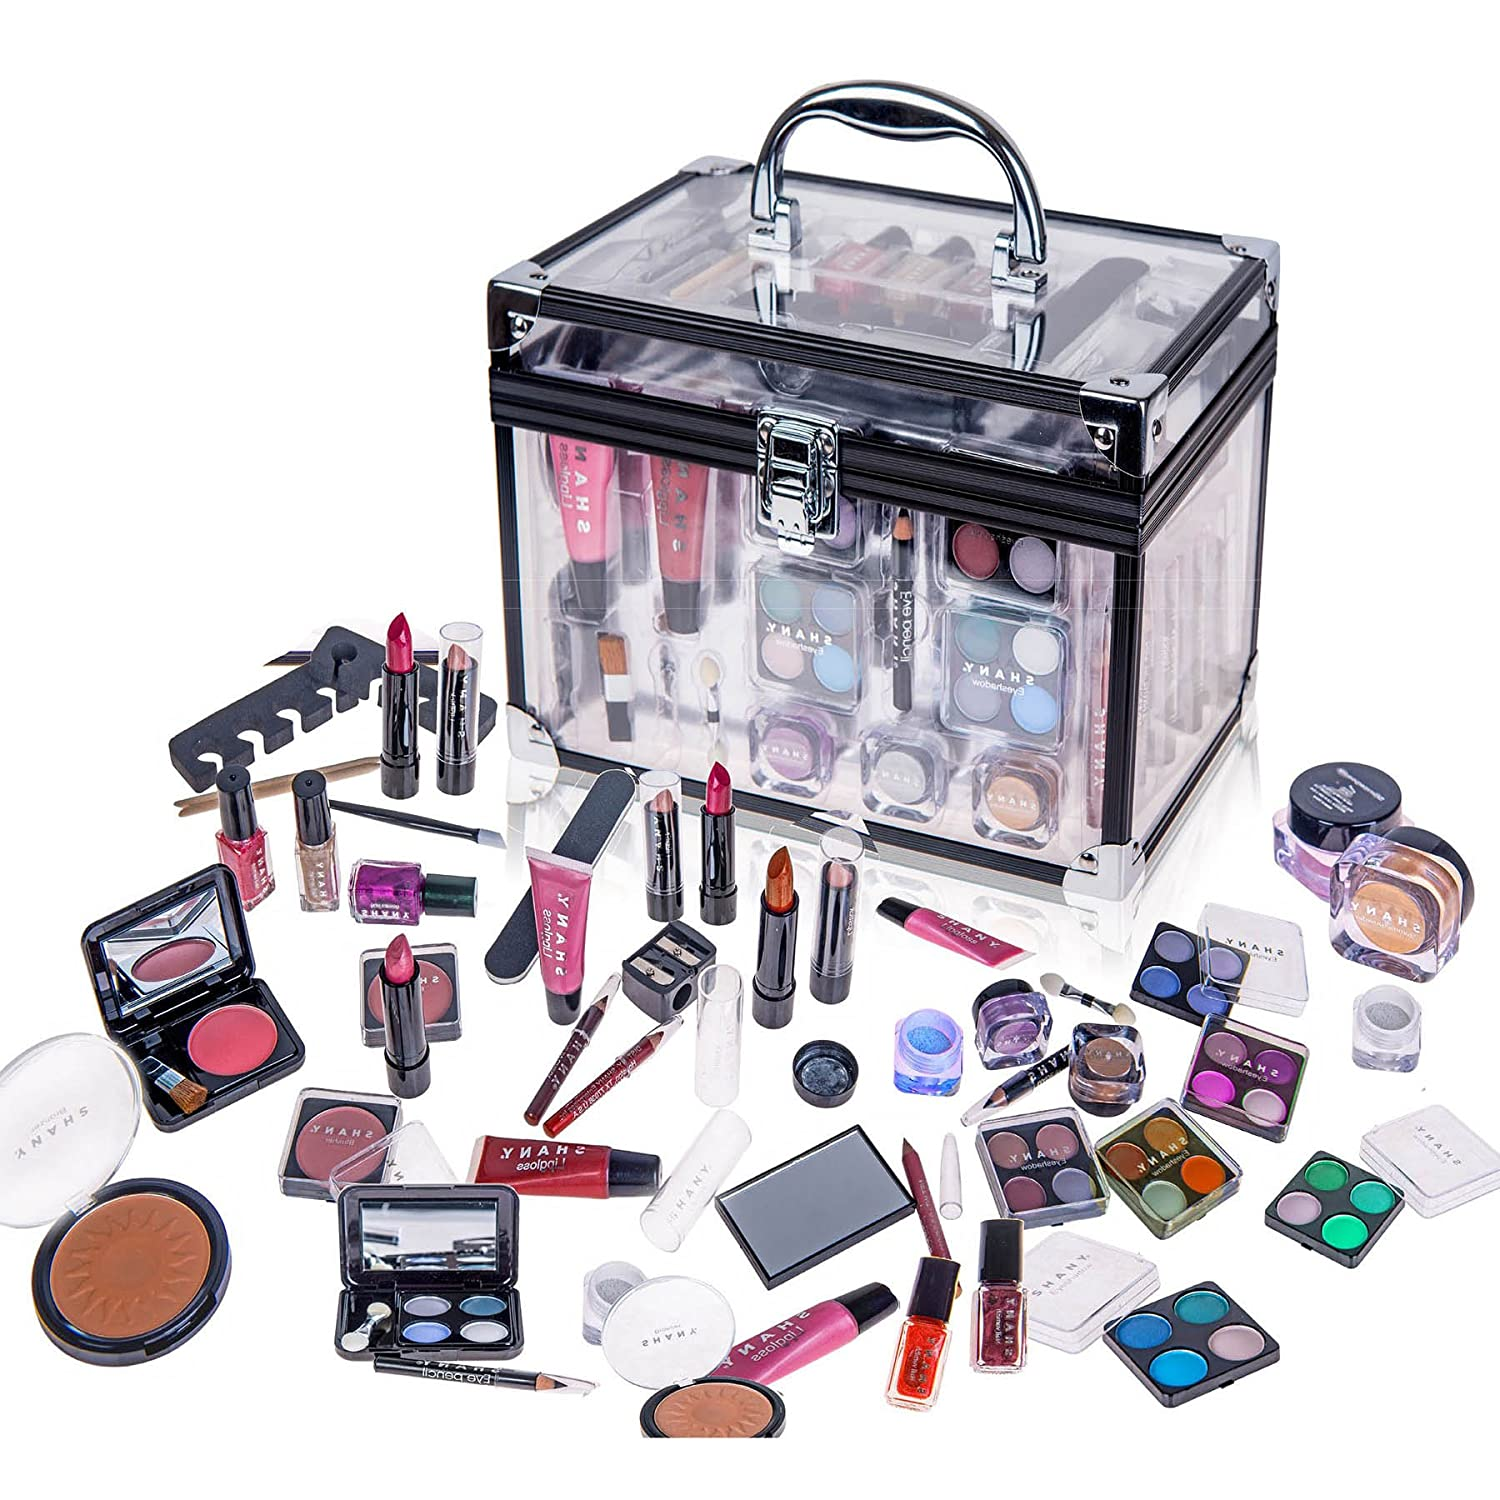 Original Eyeshadow Diy Makeup Tools Children Lovely Beauty Plastic Makeup Comestics Kit Eye Shadow Beauty Essentials